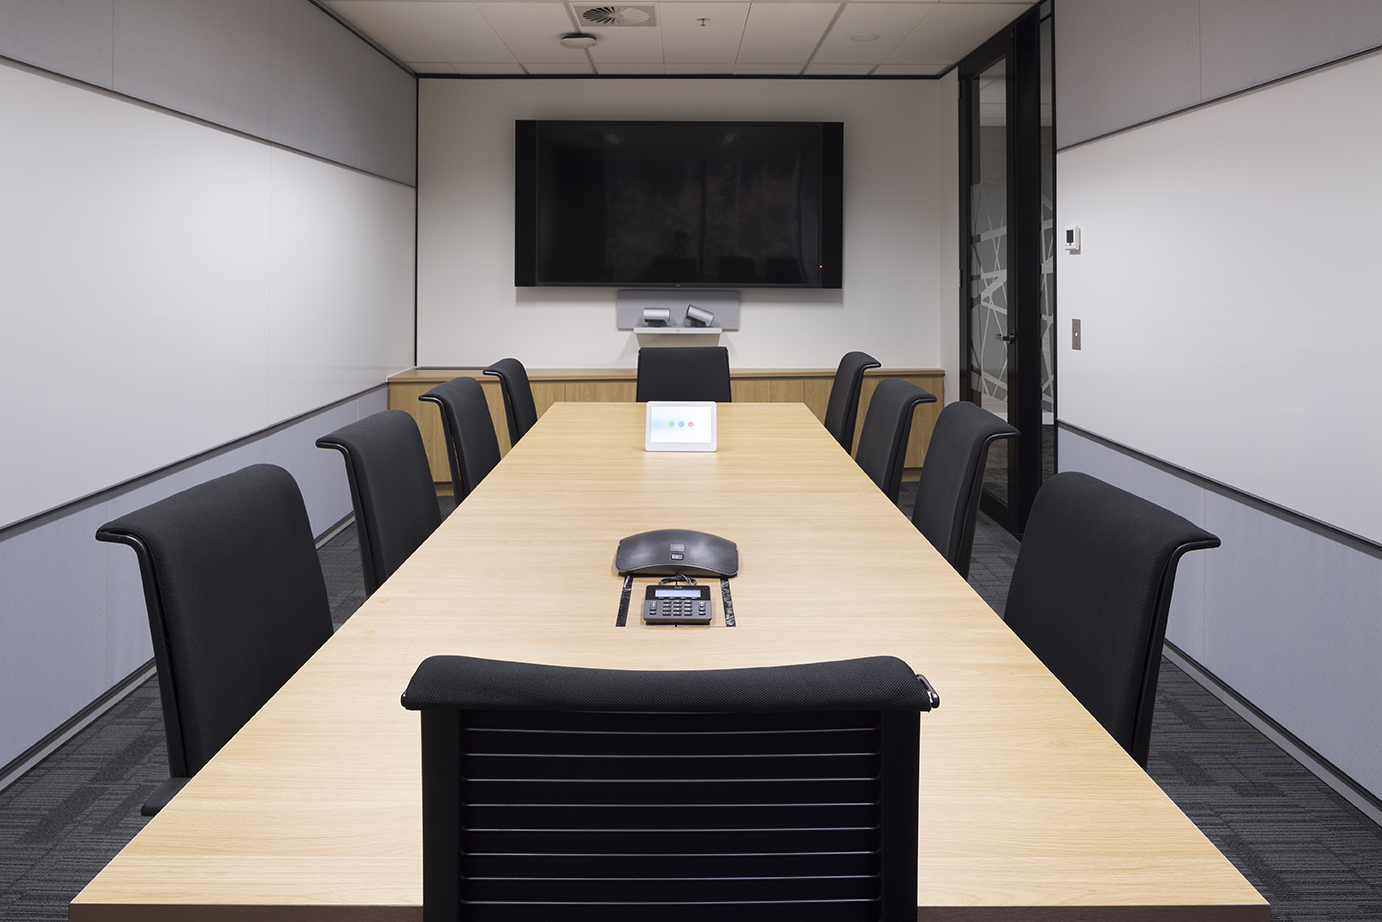 Tall Architects are experts at designing board rooms that integrate the latest VC (Video Conferencing) technologies.